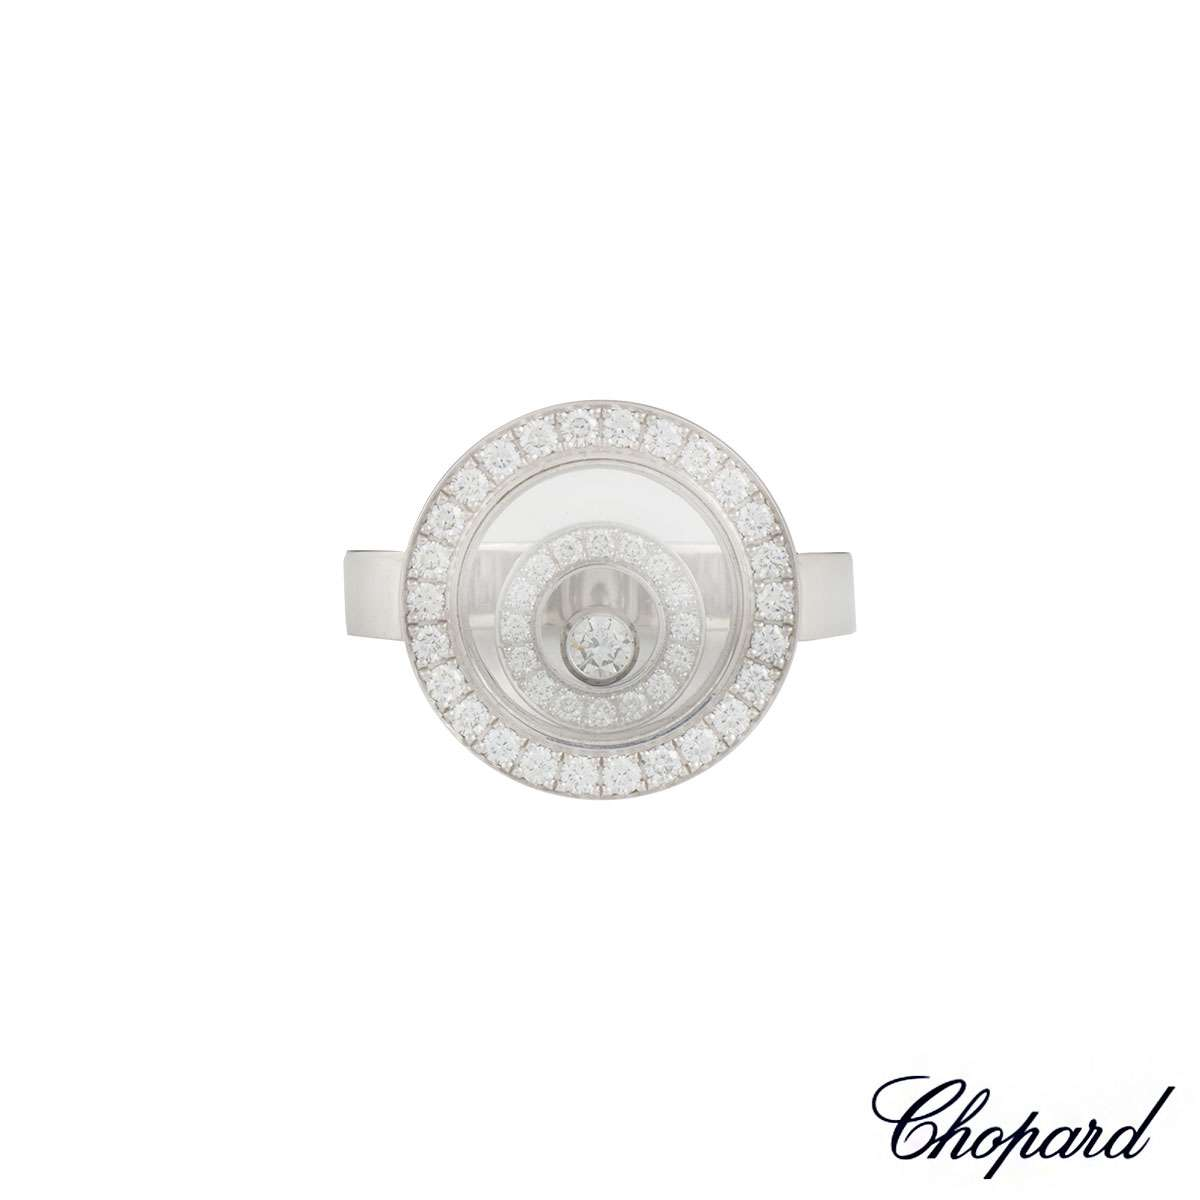 Chopard Happy Spirit Diamond Ring 82/5422-1110